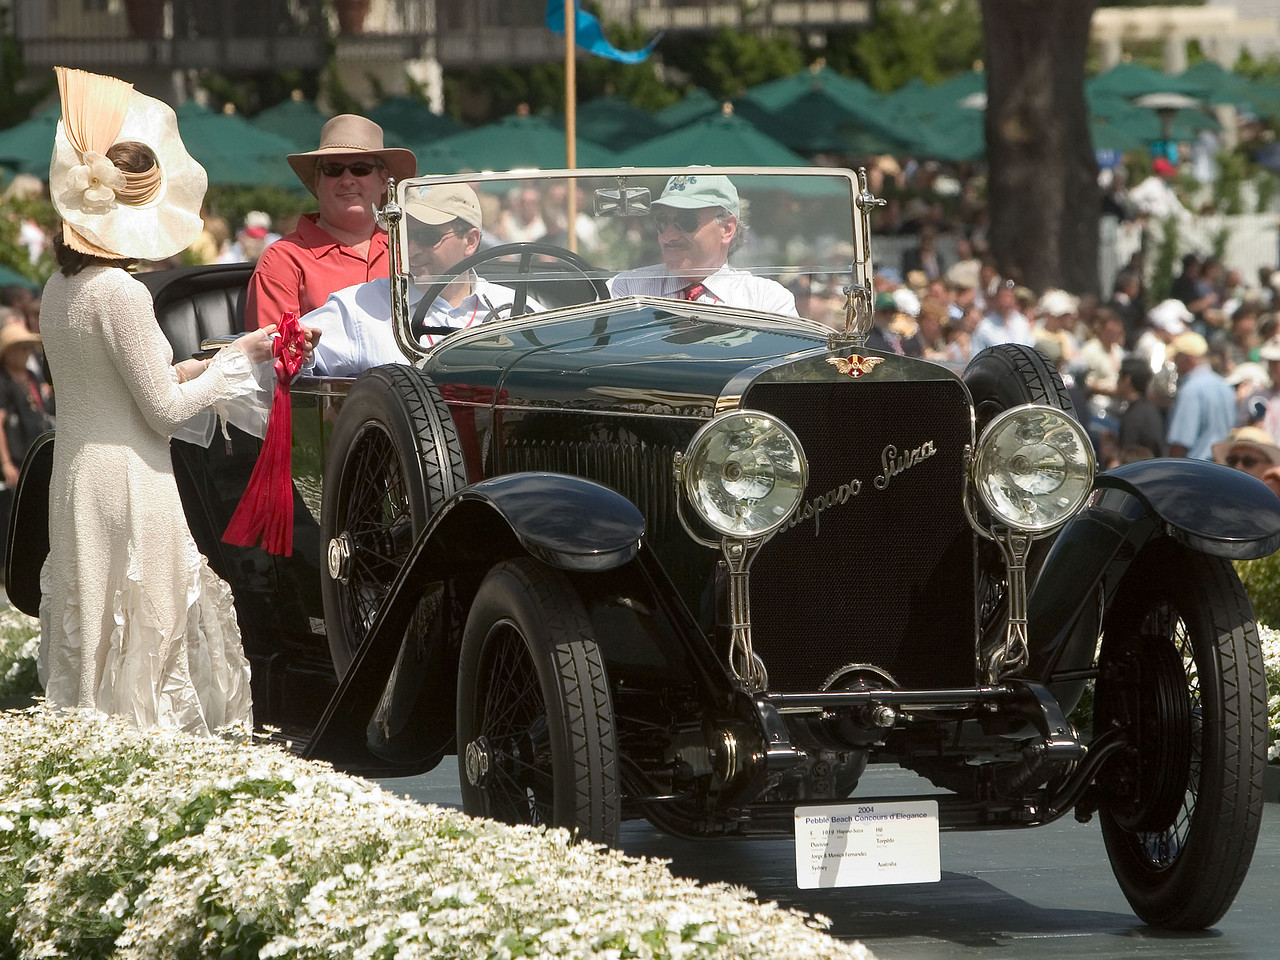 1919 Hispano-Suiza H6 Duvivier Torpédo.